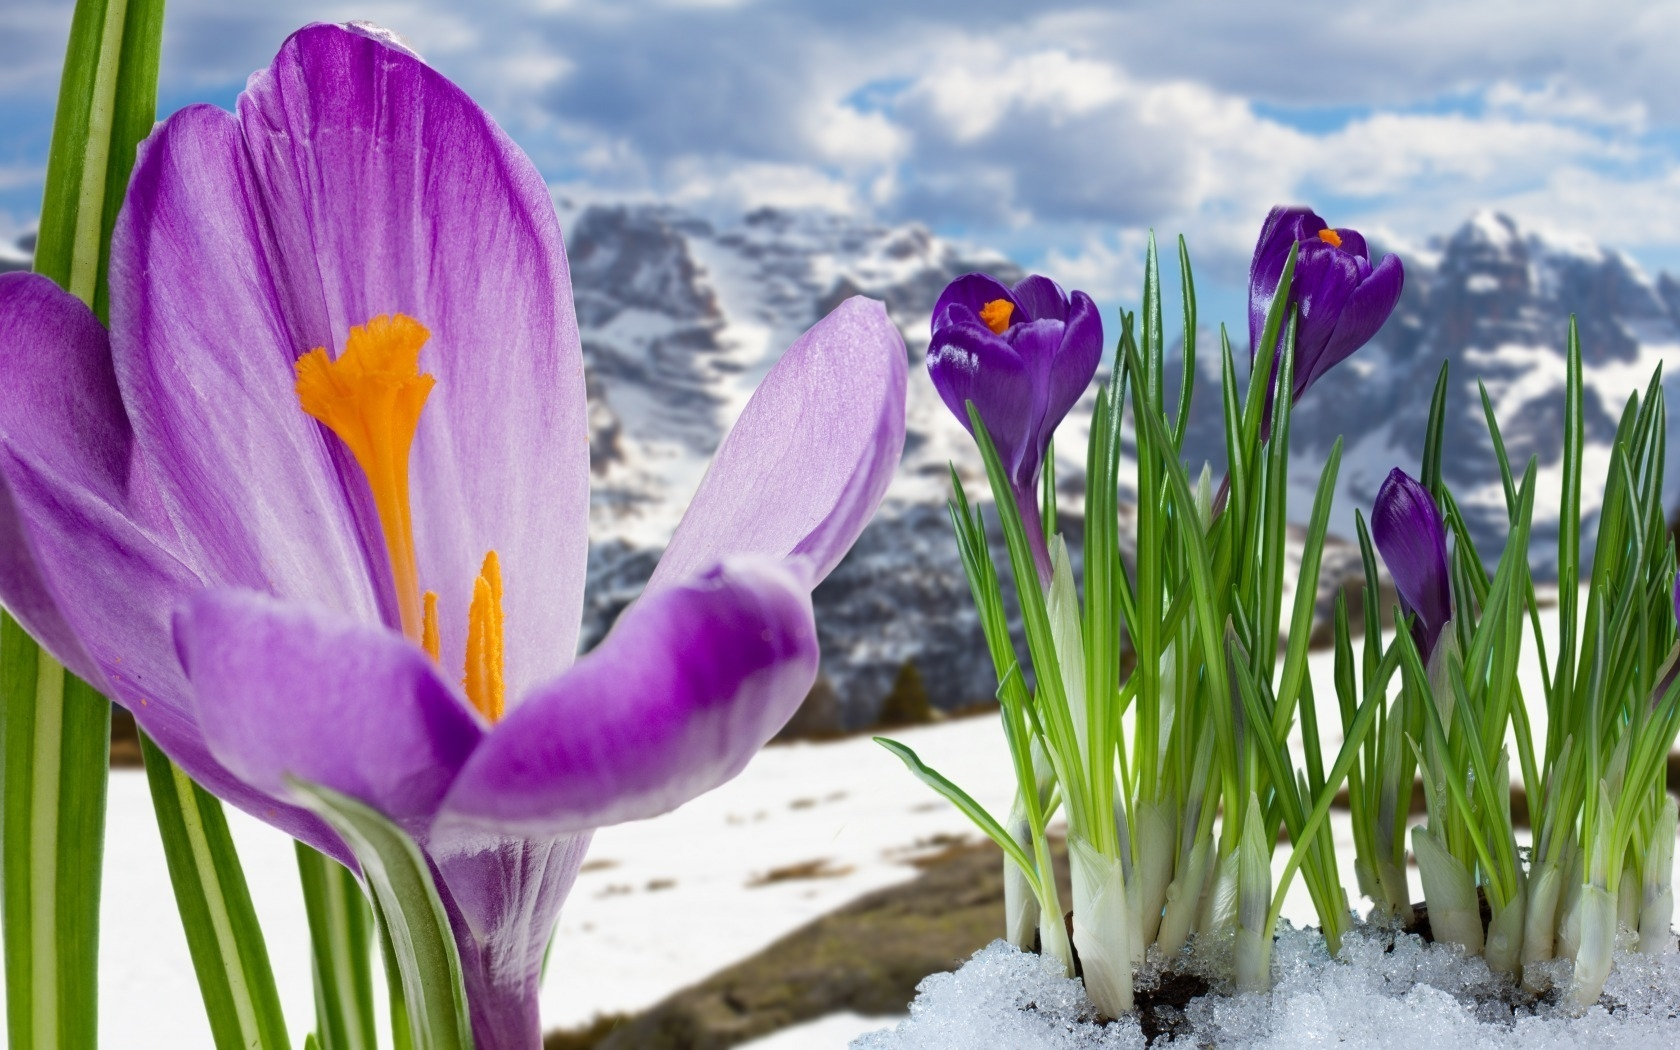 Beautiful Colorful Girls Anime Wallpaper Spring Mountain Flowers Wallpaper Nature And Landscape